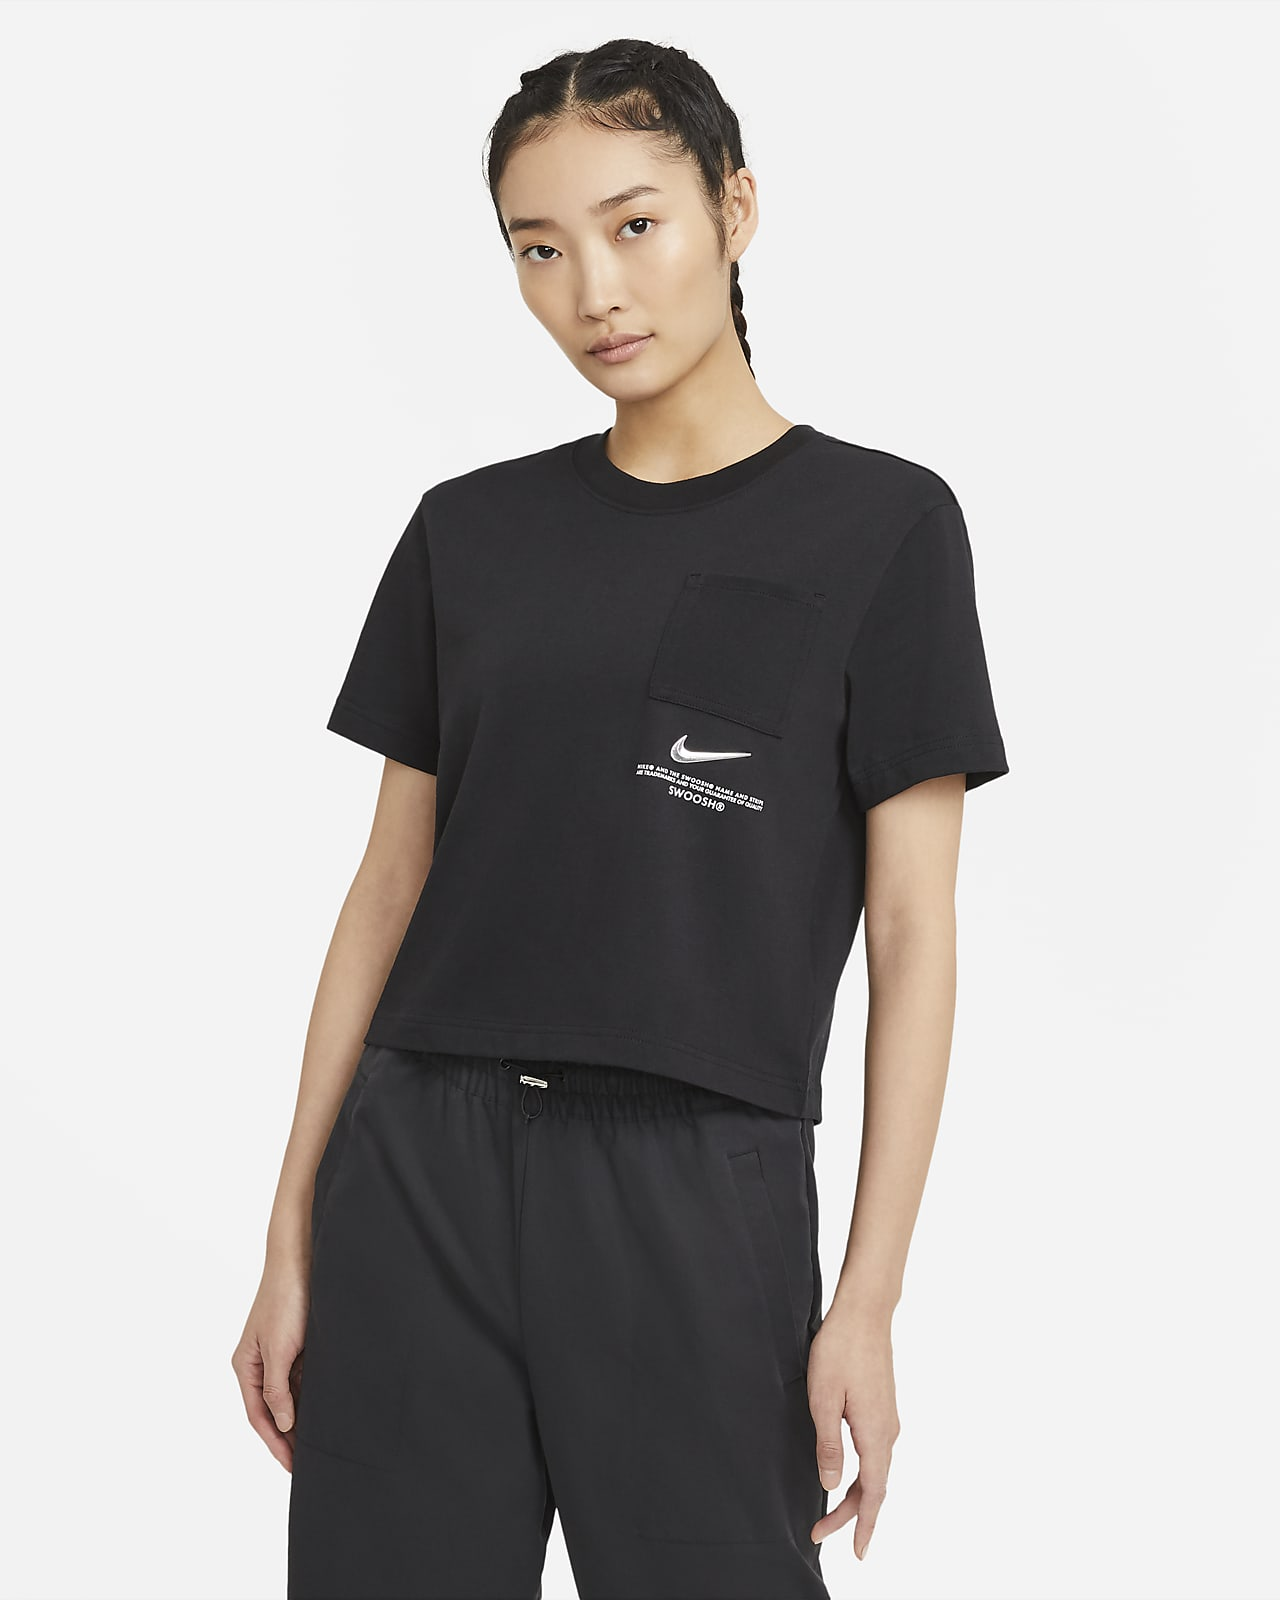 Nike Sportswear Swoosh Women's Short-Sleeve Top